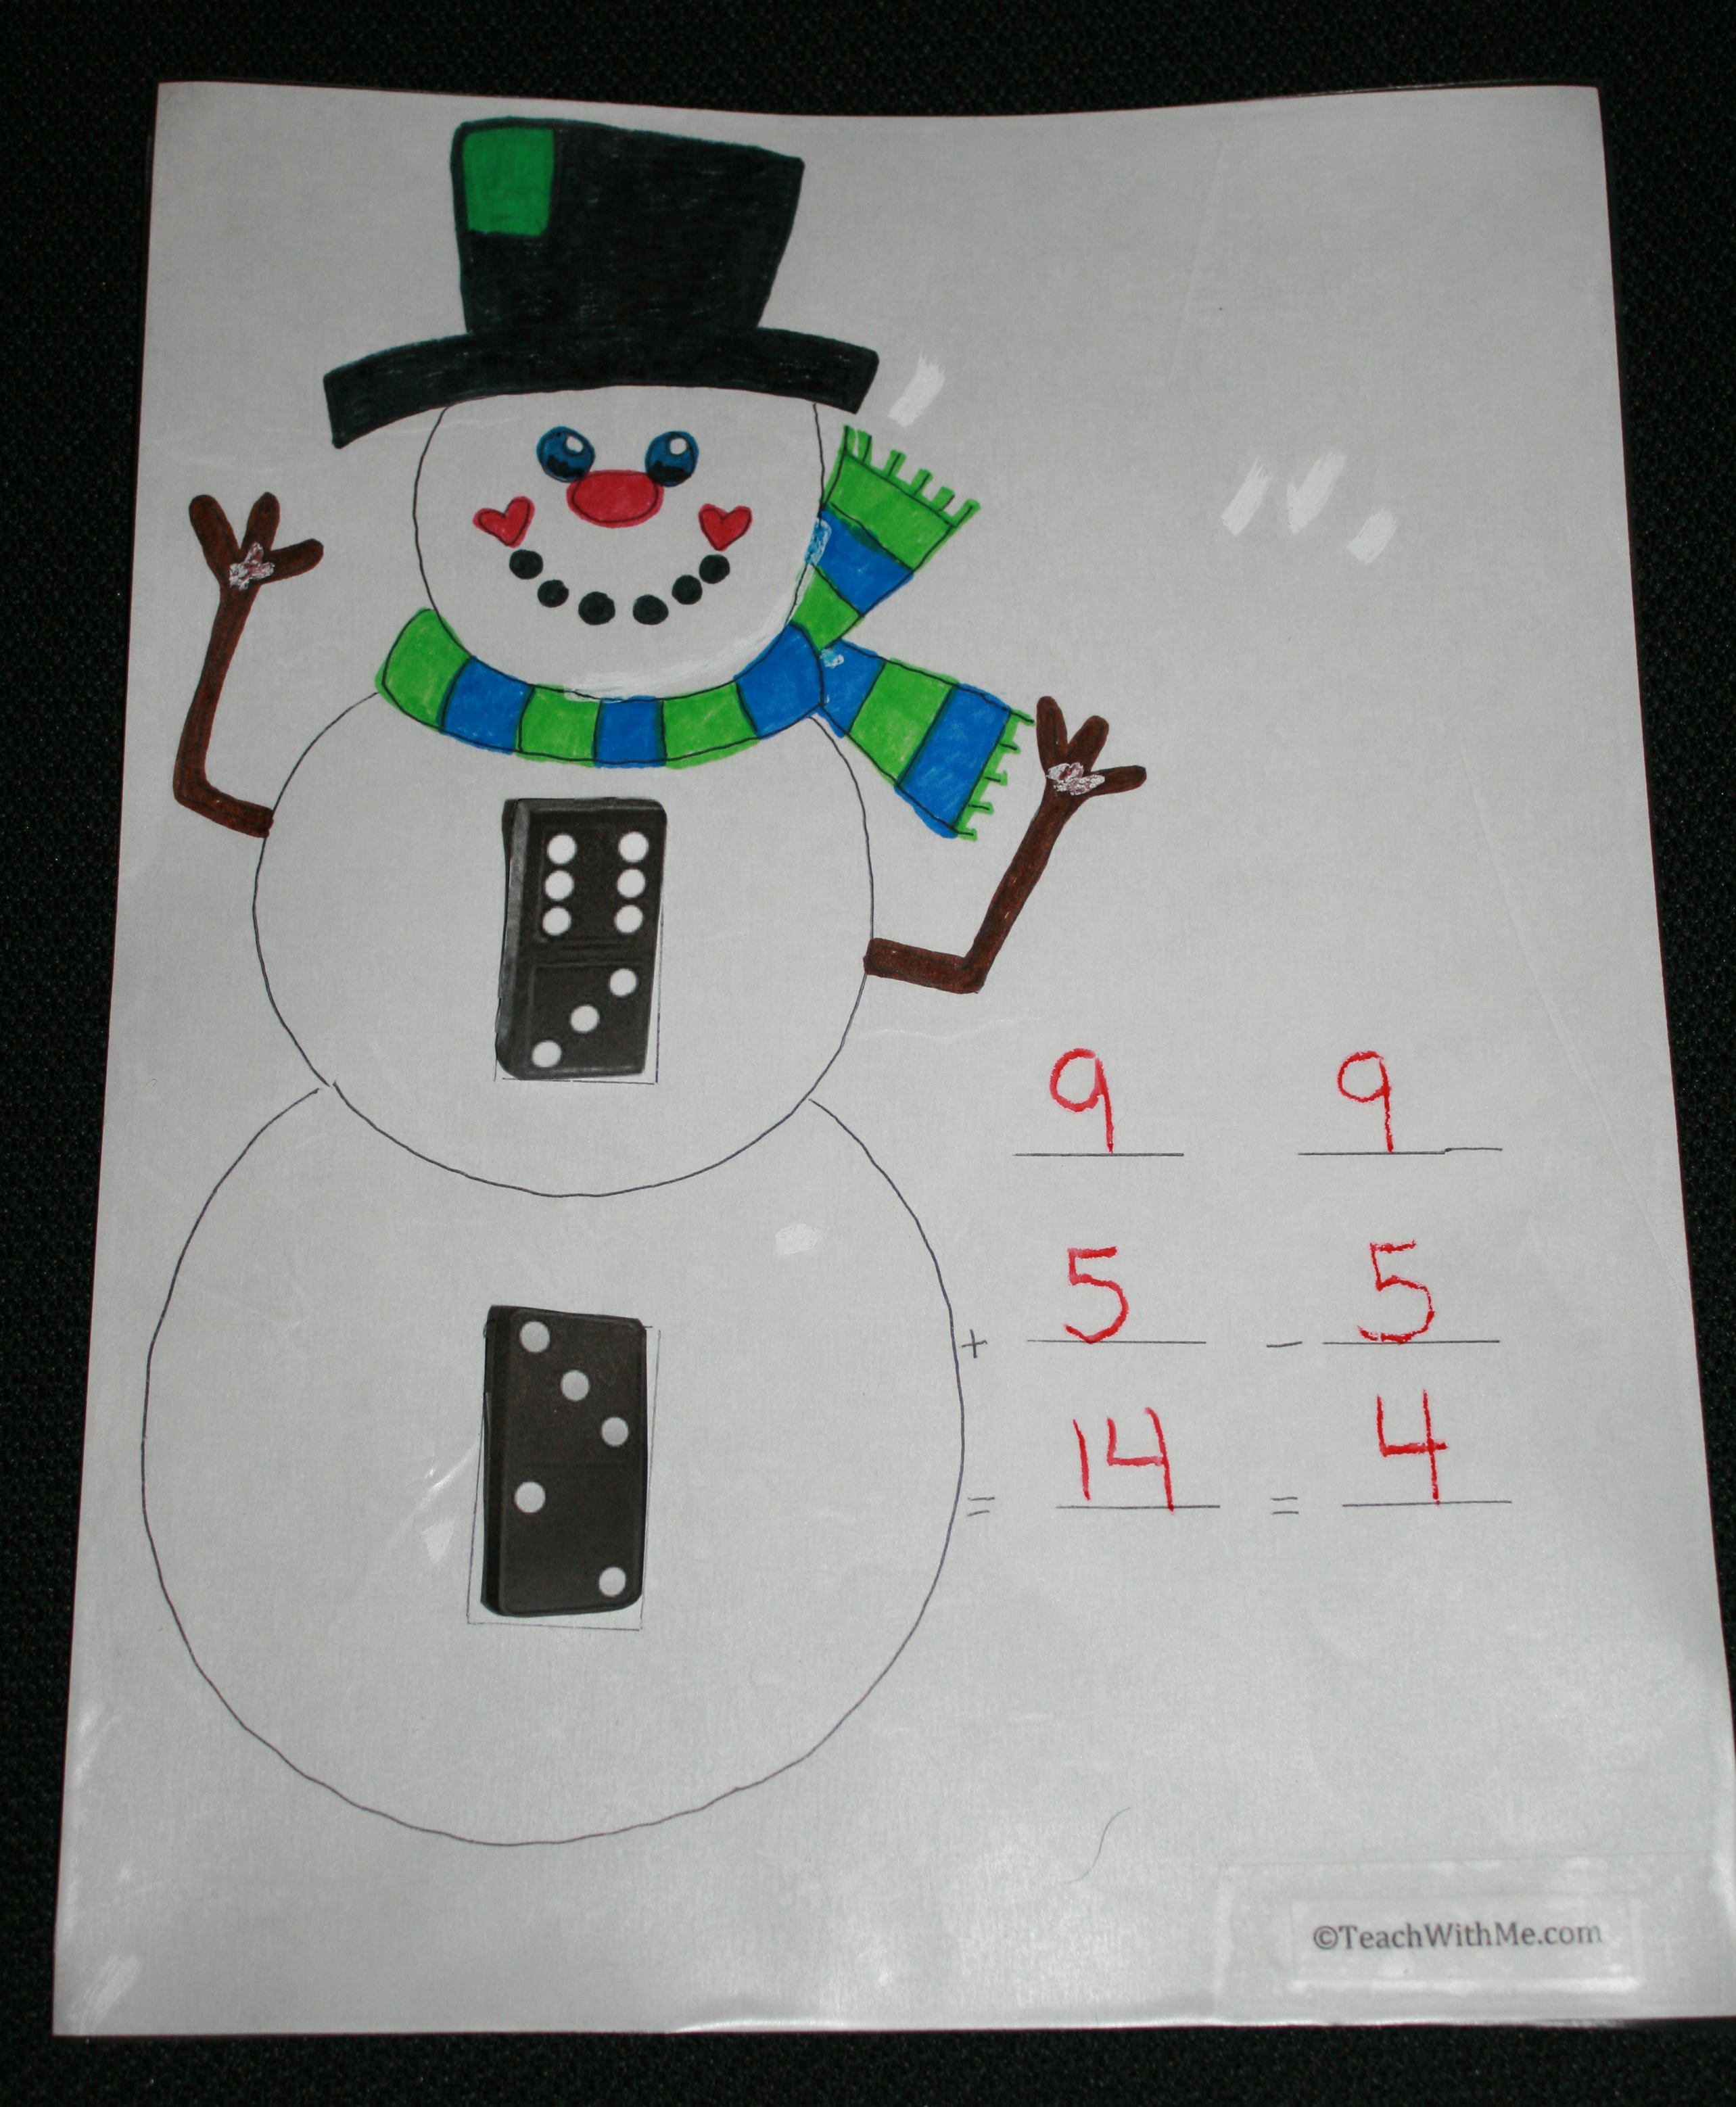 dominoes, math game, snowman activities, math centers, centers, games with dominoes, math games with dominoes,snowman ideas, math facts, addition and subtraction activities, addition and subtraction games,